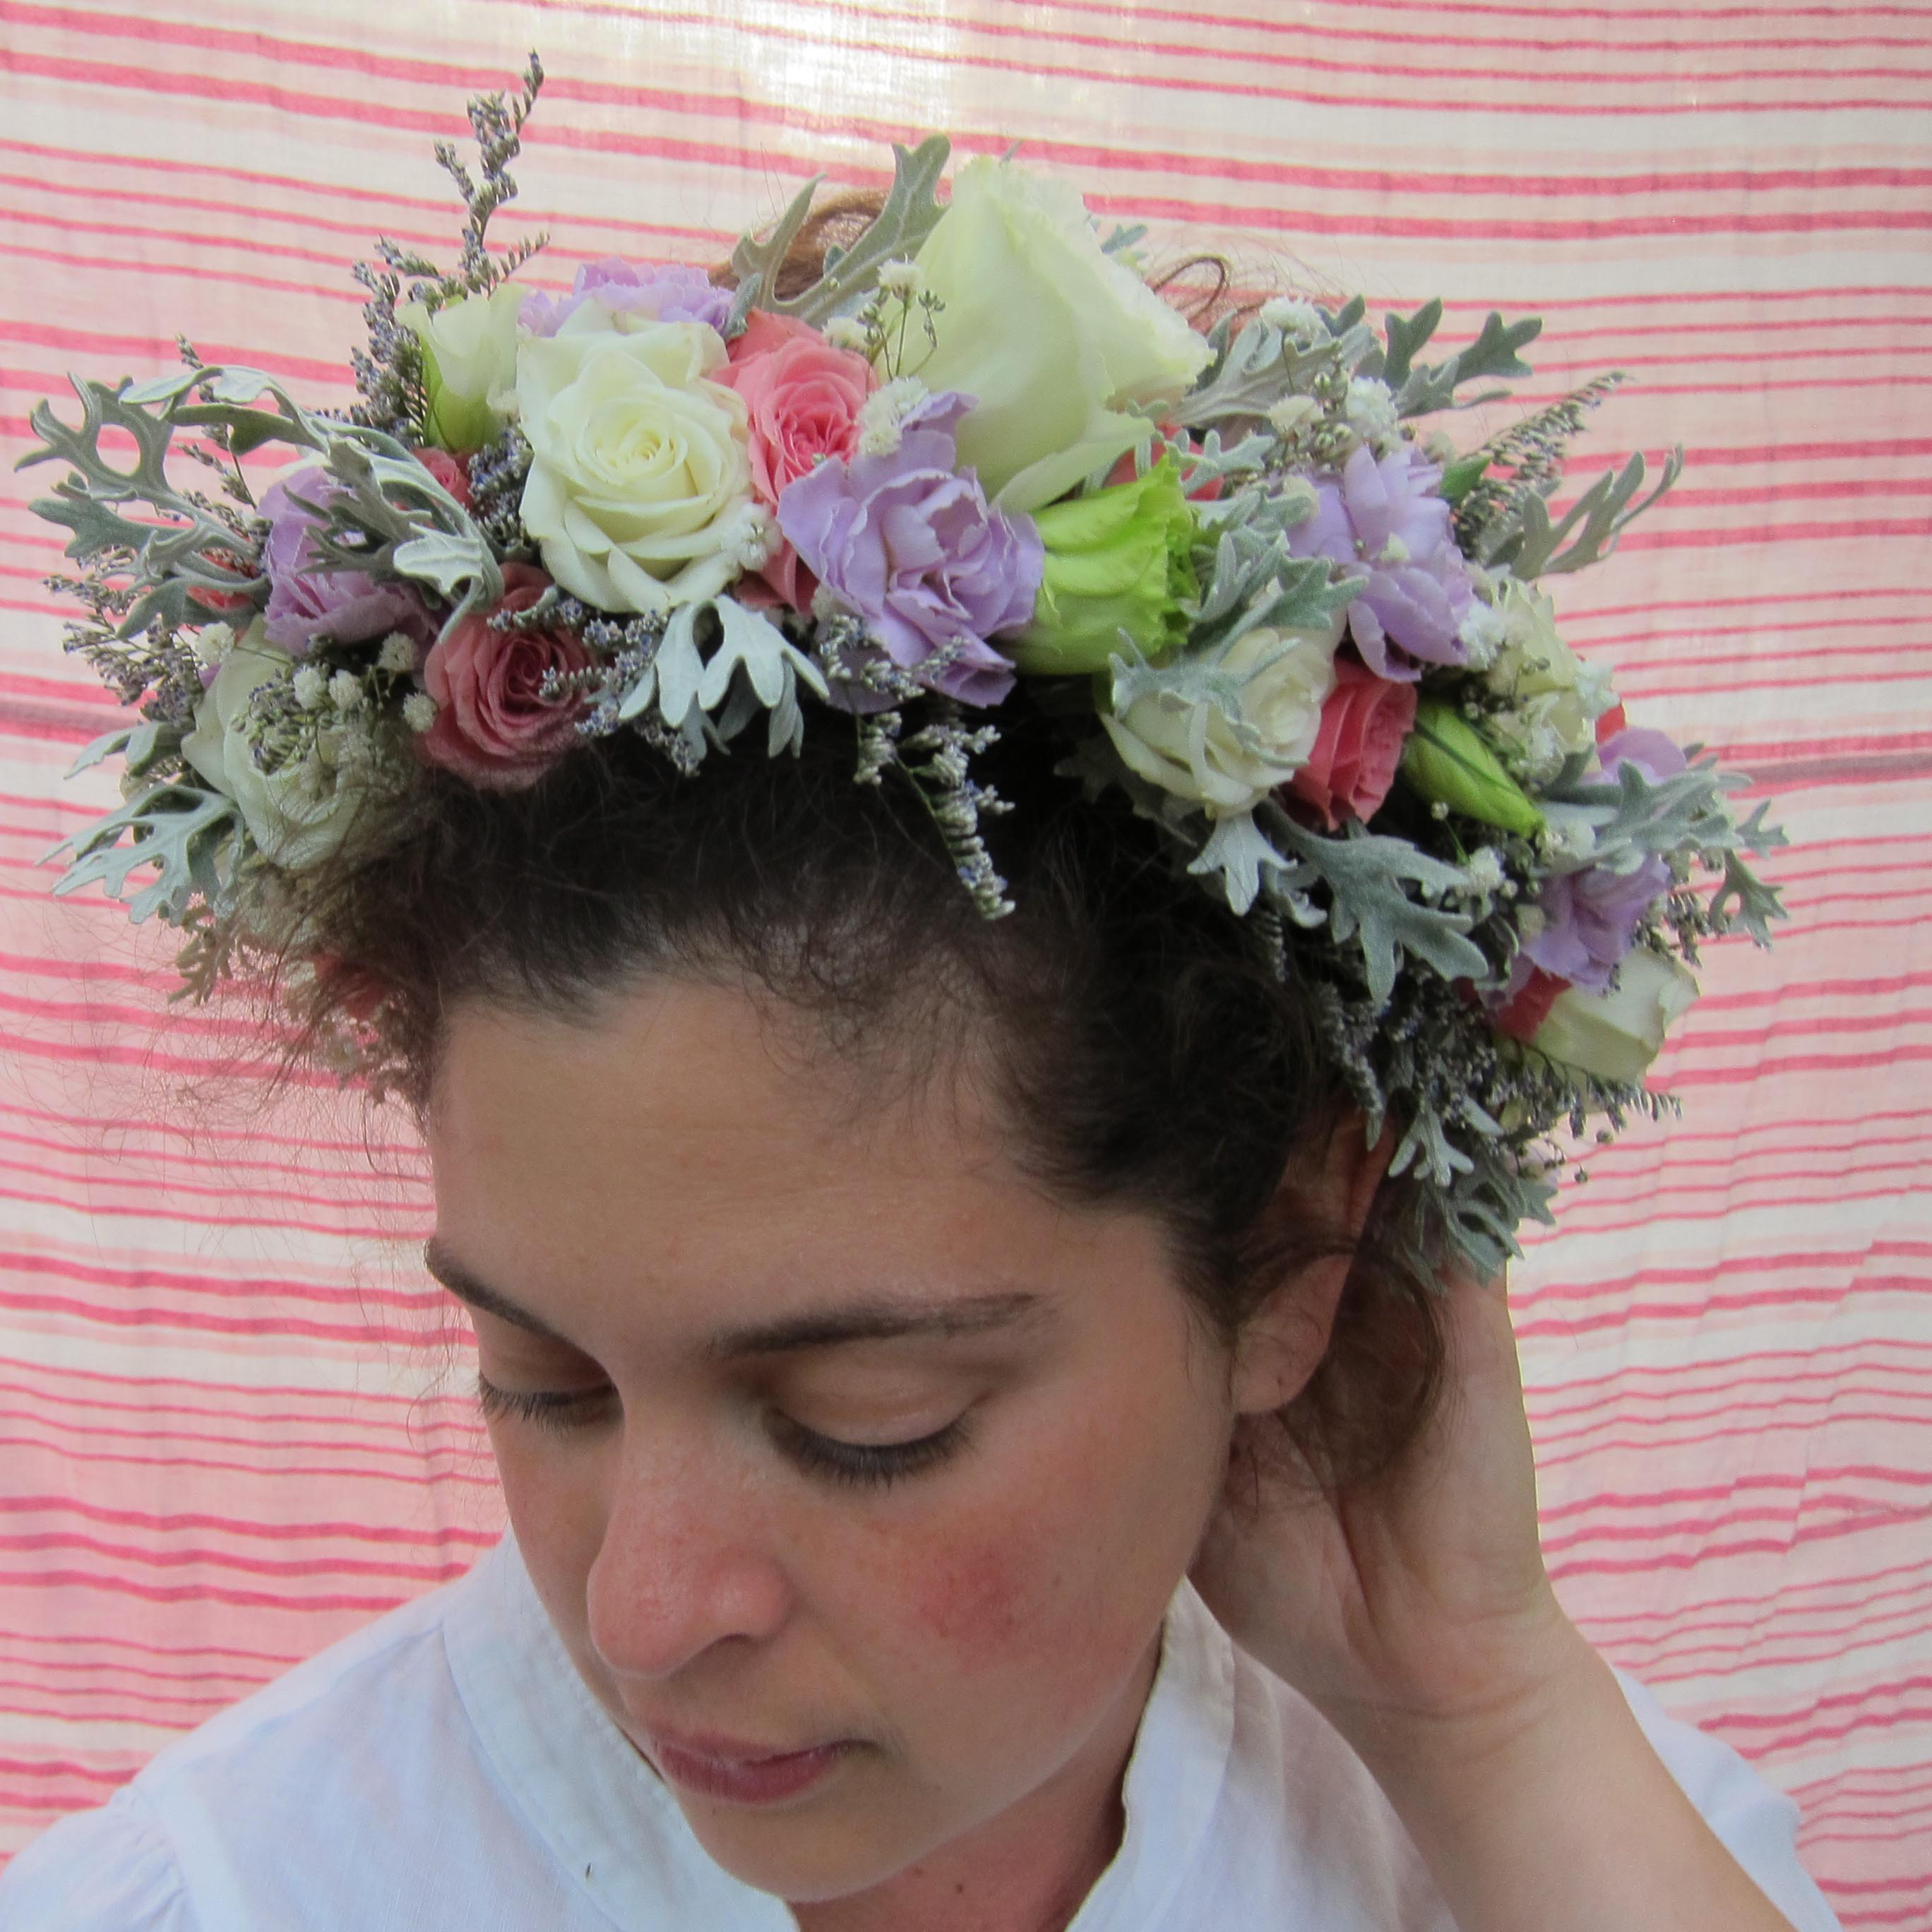 Full-sized flower crown with spray roses | designed by Natasha Price of Paper Peony